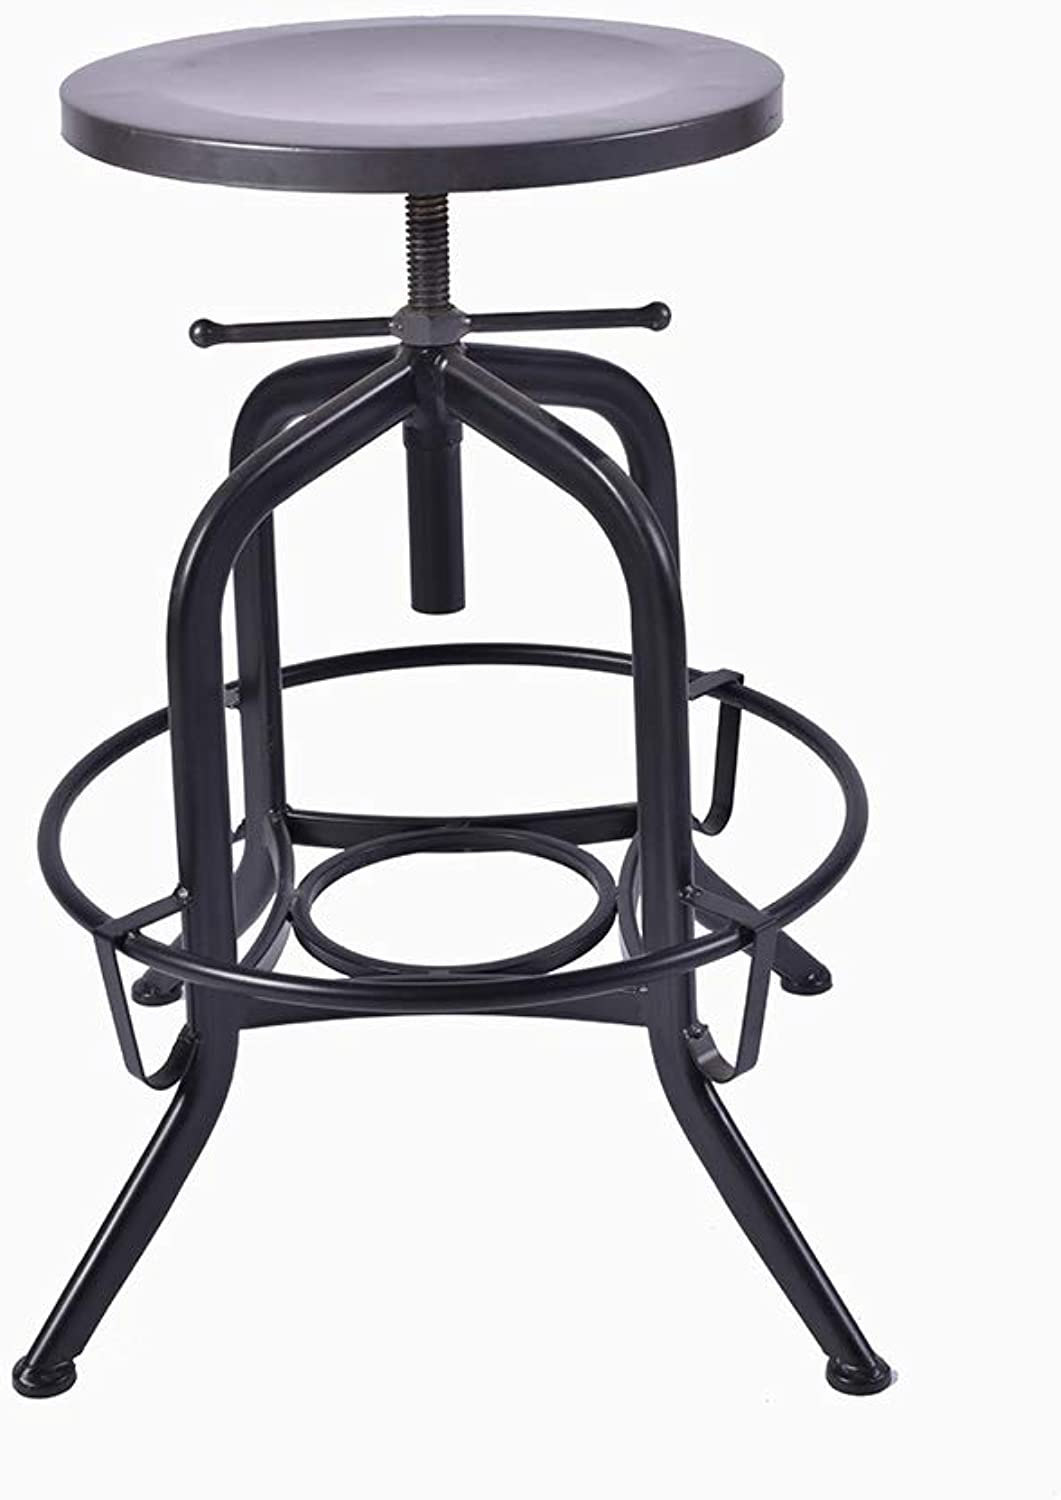 NUBAO Counter Chair, High Stool, Industrial Style Creative Wrought Iron Bar Stool Vintage Old Coffee Shop Stool Bolt redating Bar Stool Lift 60-75cm Black (color   Black)